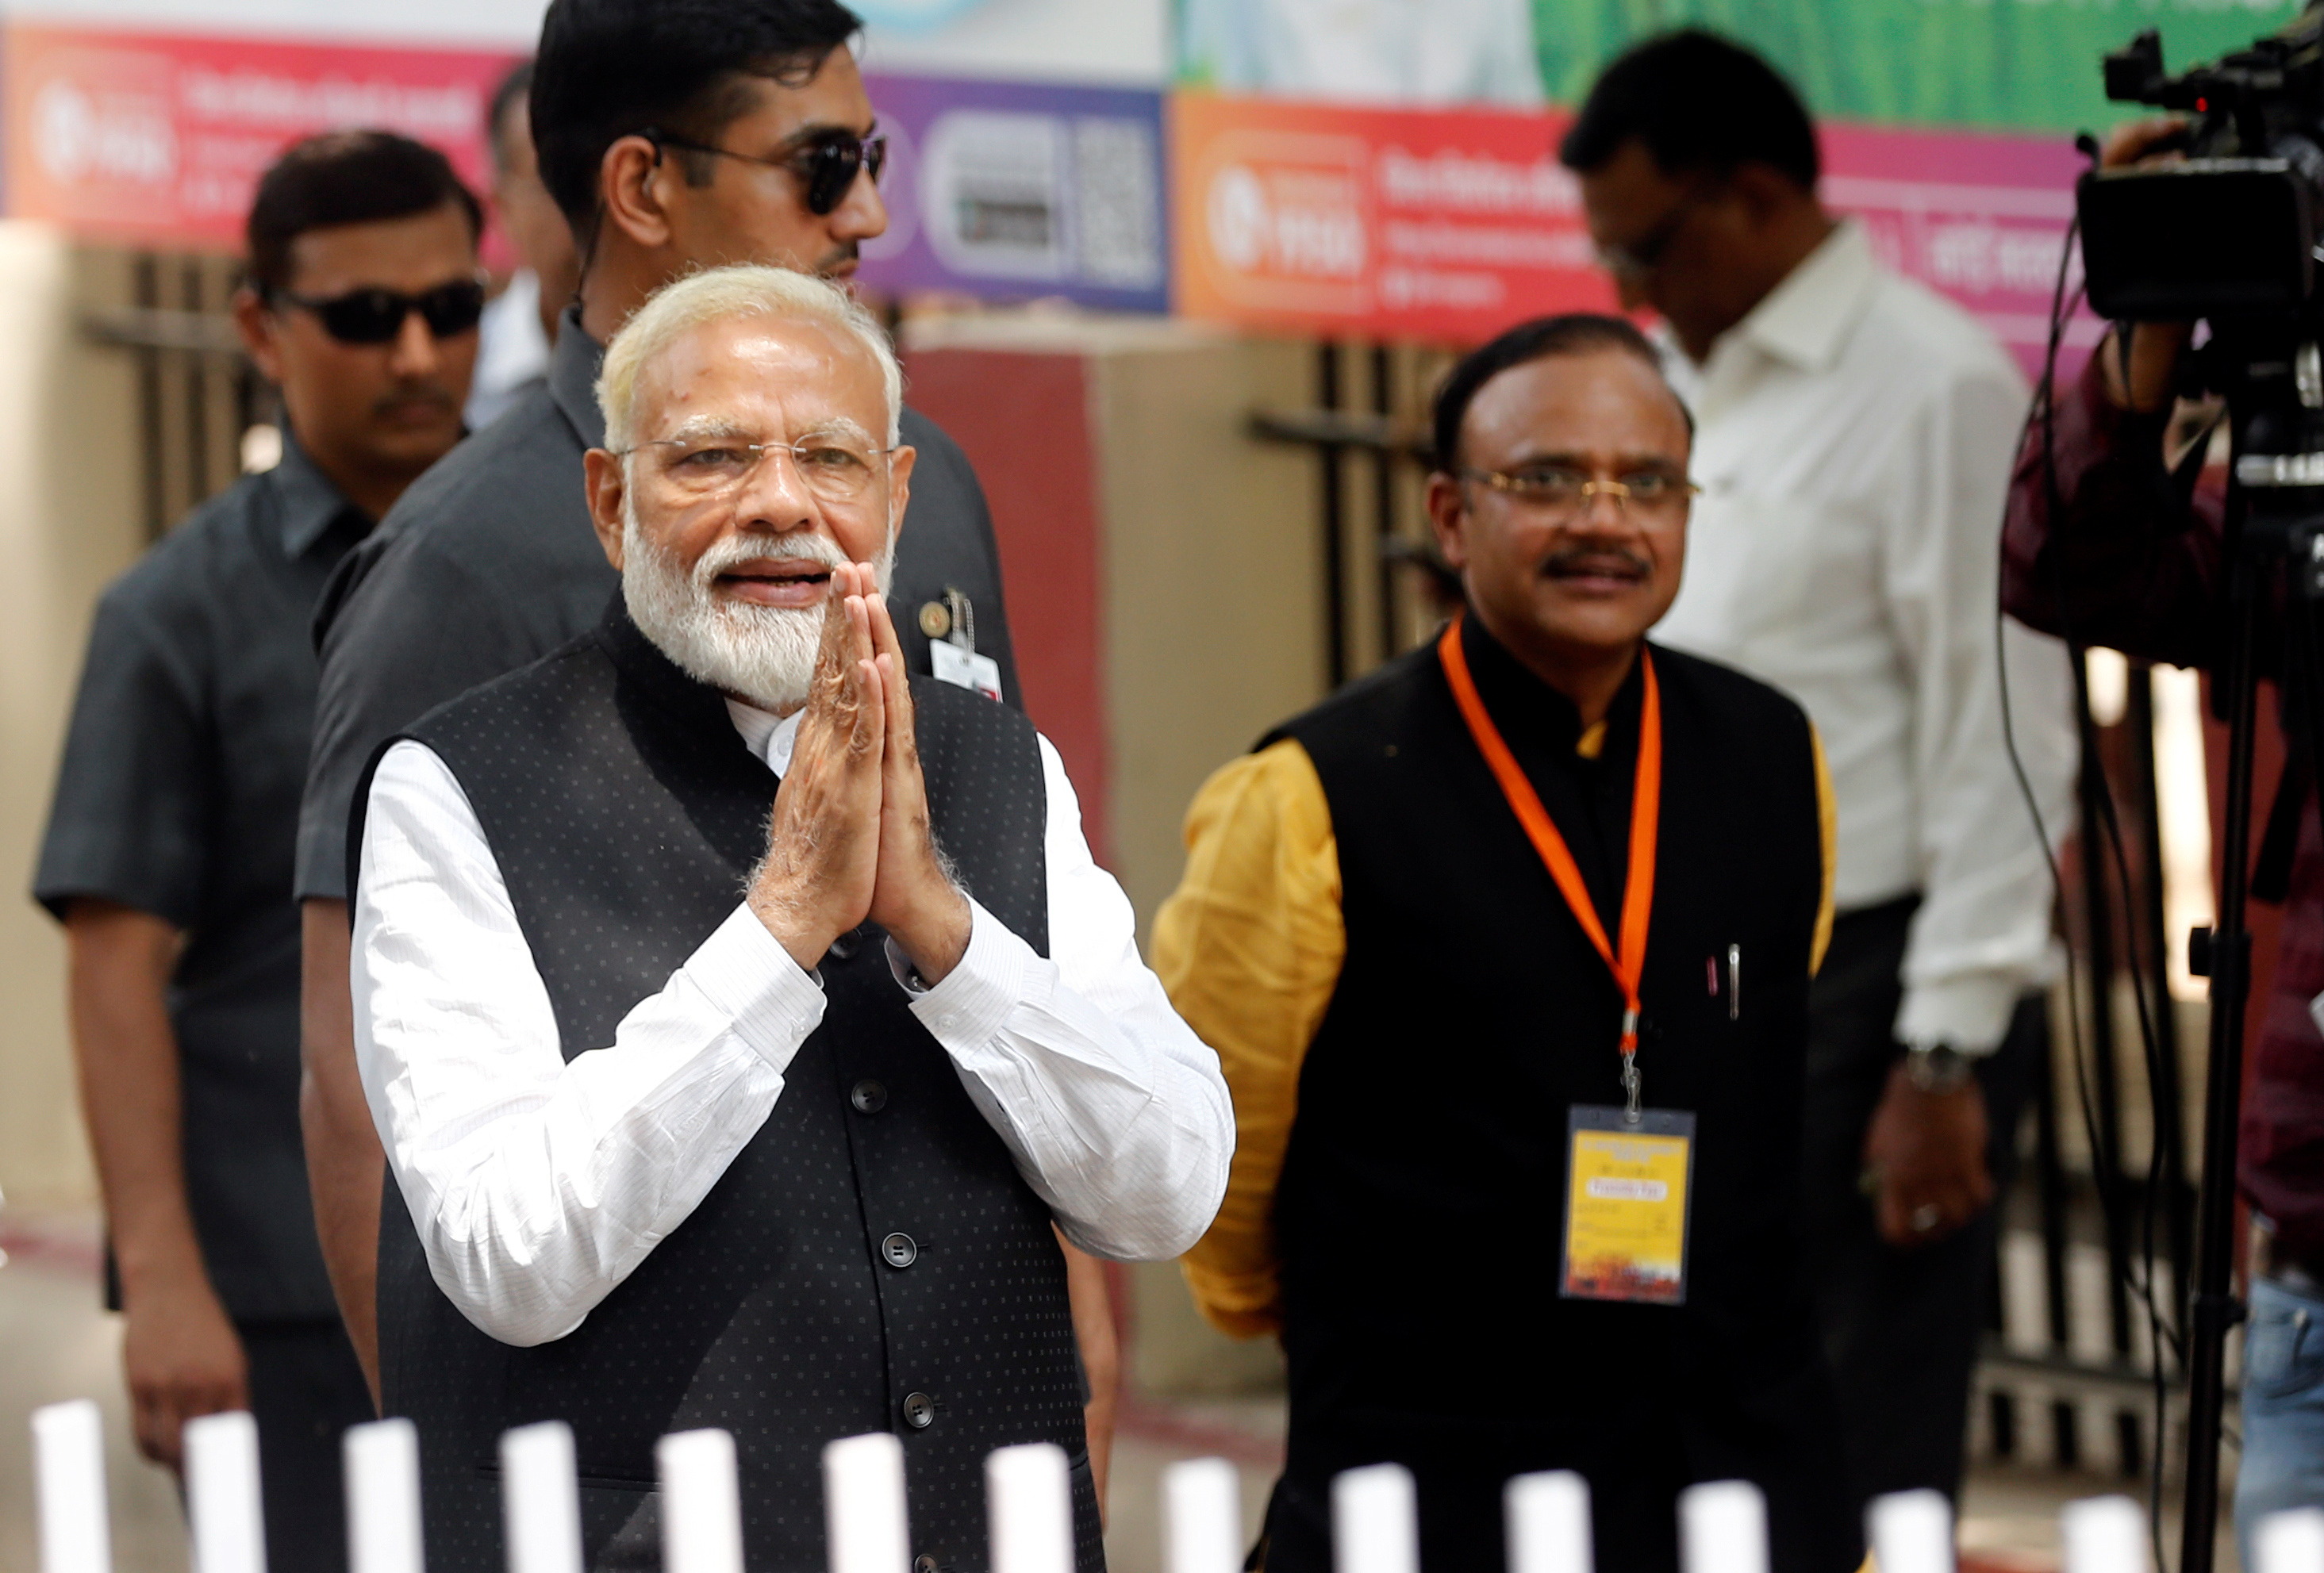 At his first news conference in India, PM Modi declines